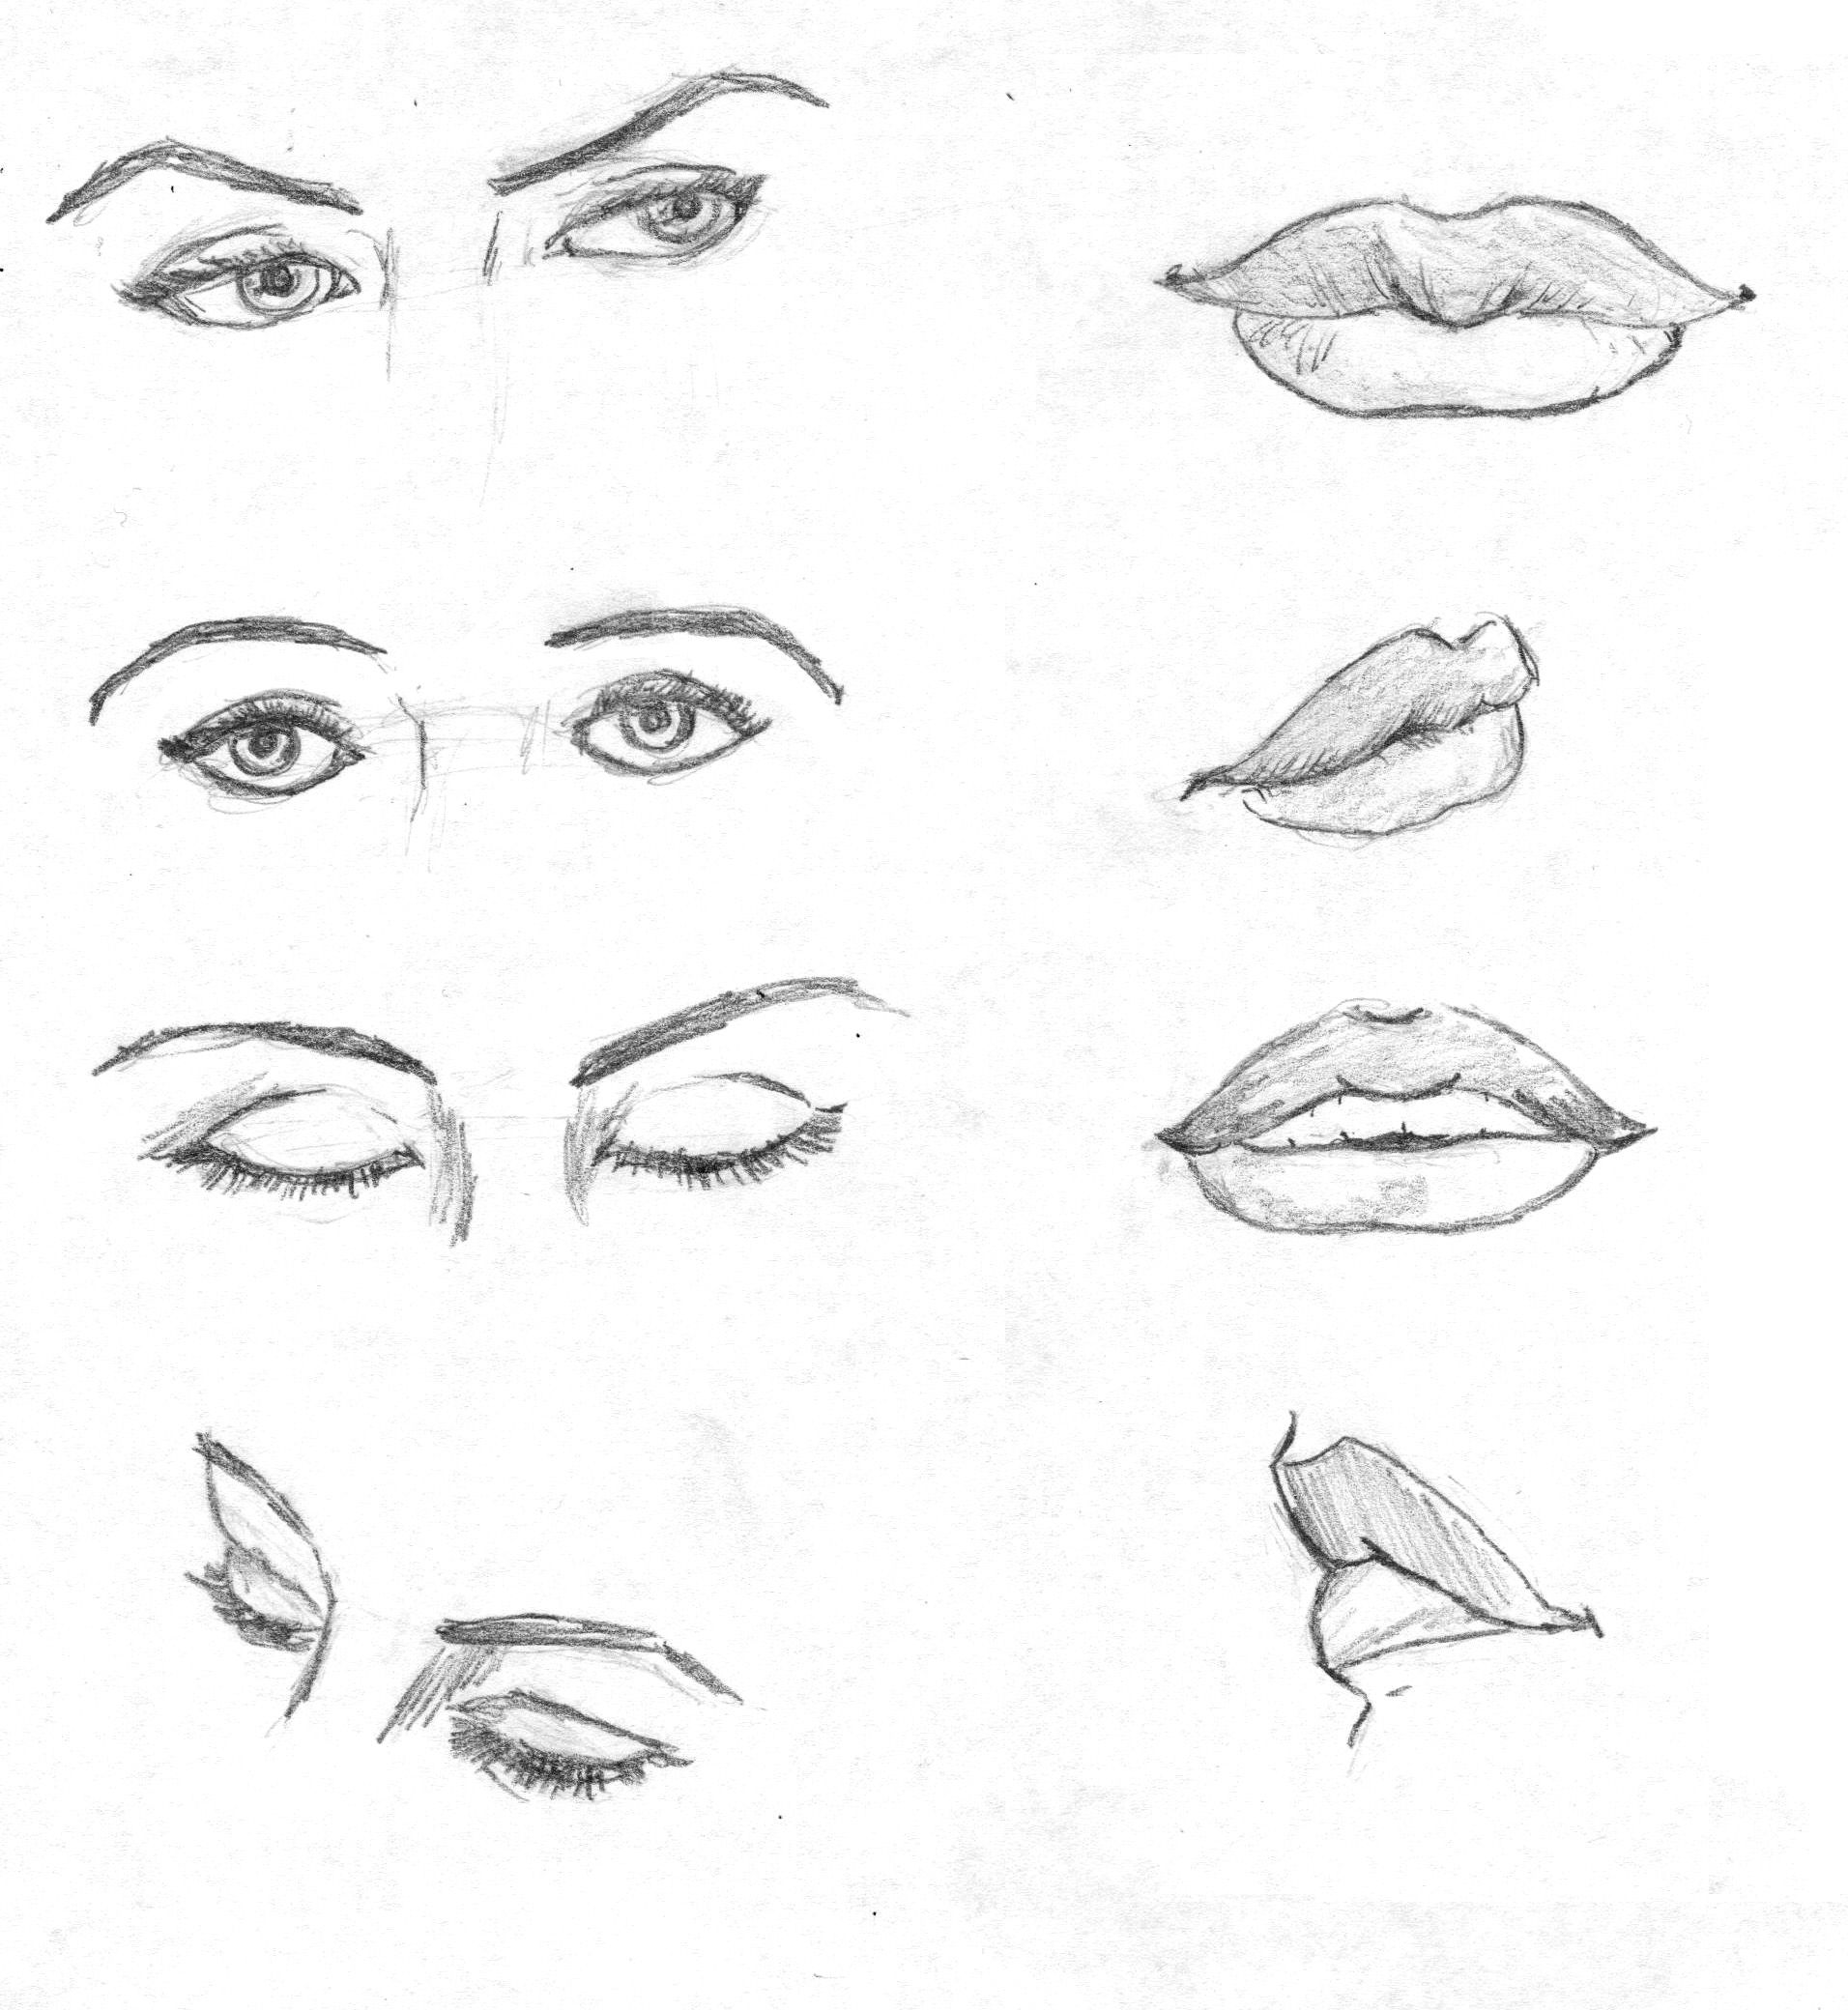 к�� н��������� г���� с����: 15 т�� и���������� н������ в Я�������������� Draw  Lipsfull Lipsdrawing Practiceart Referencehow To